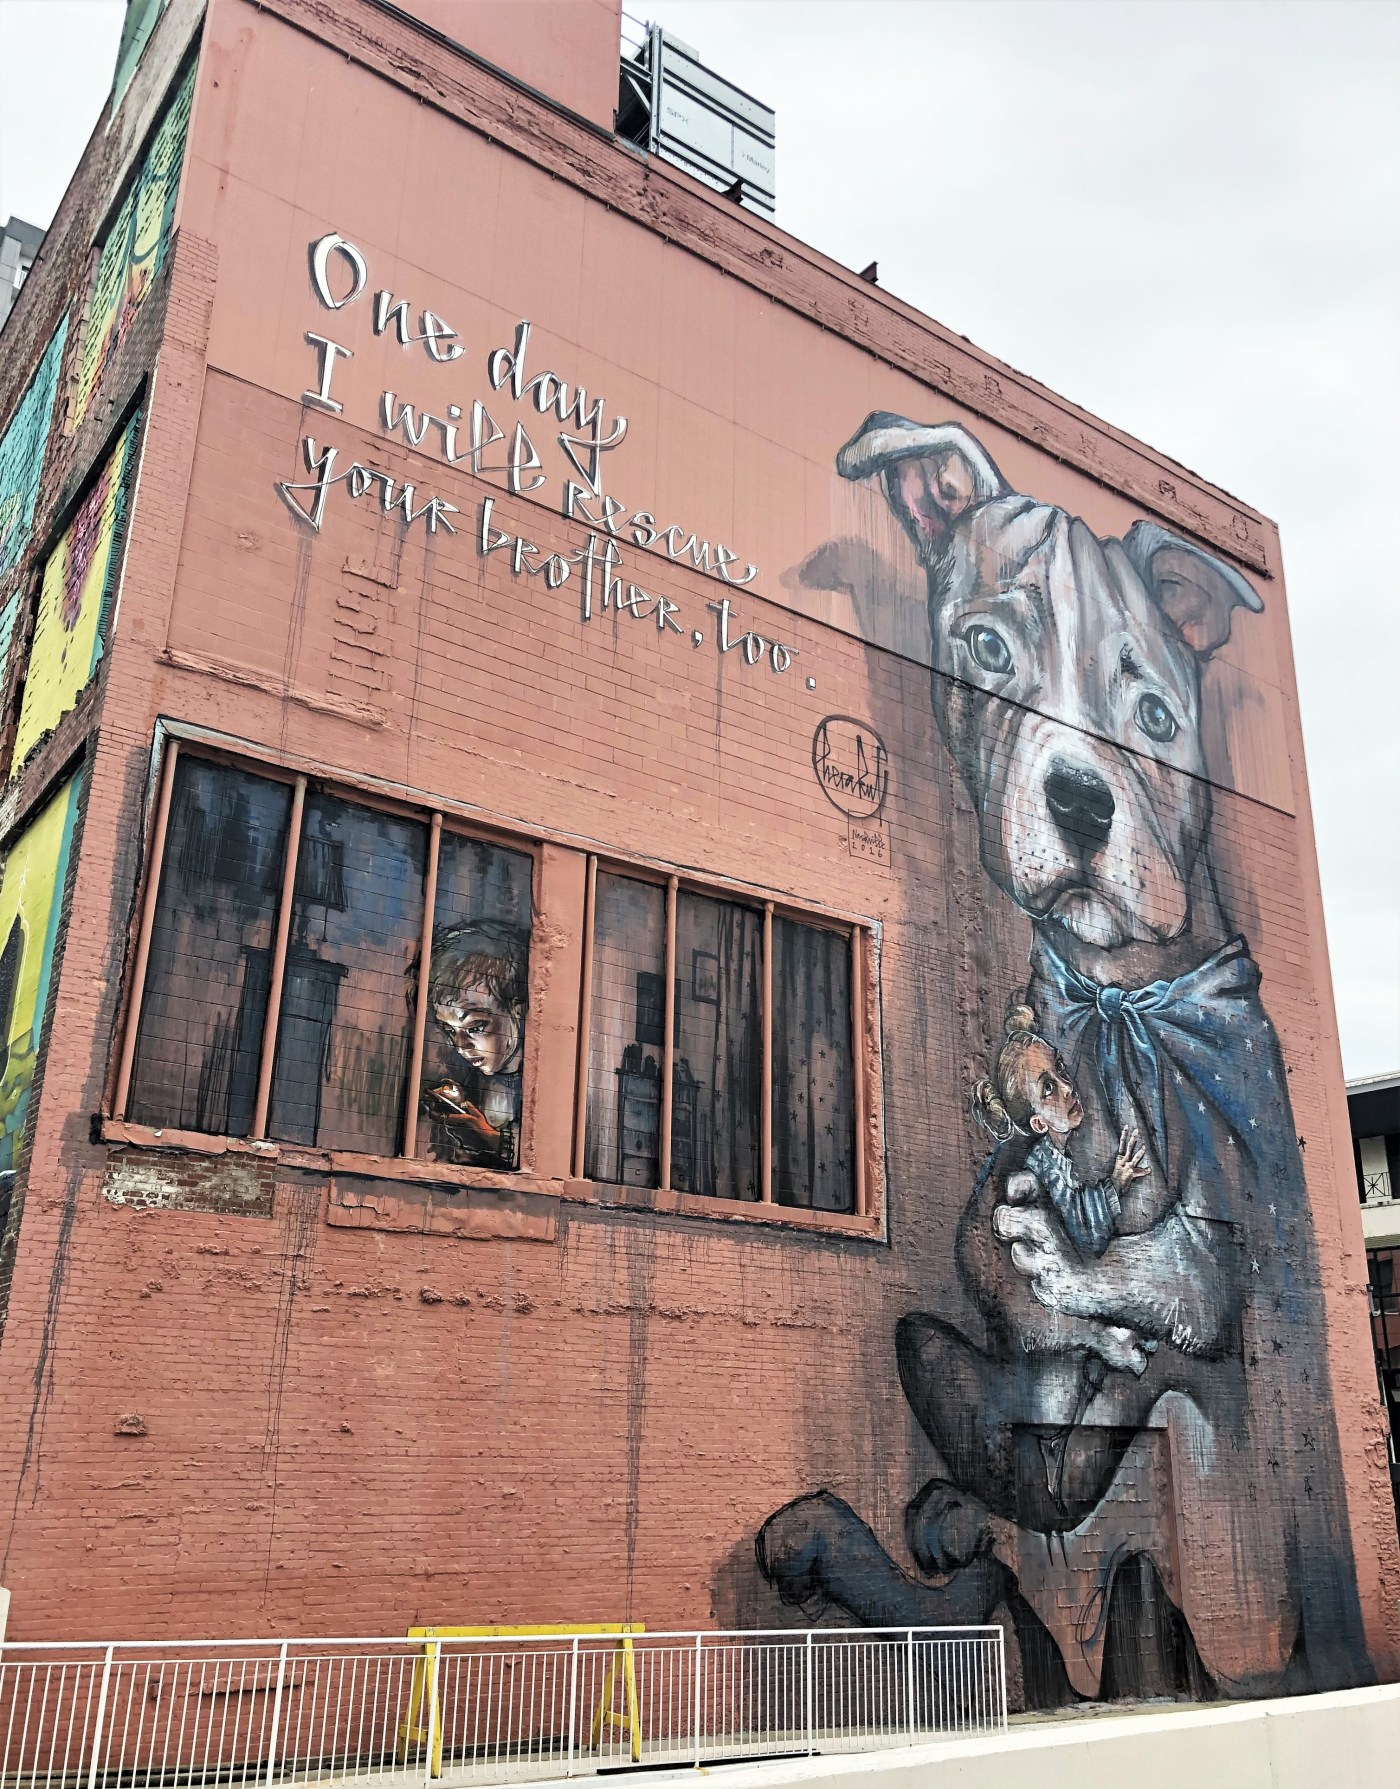 Dog child mural street art Nashville